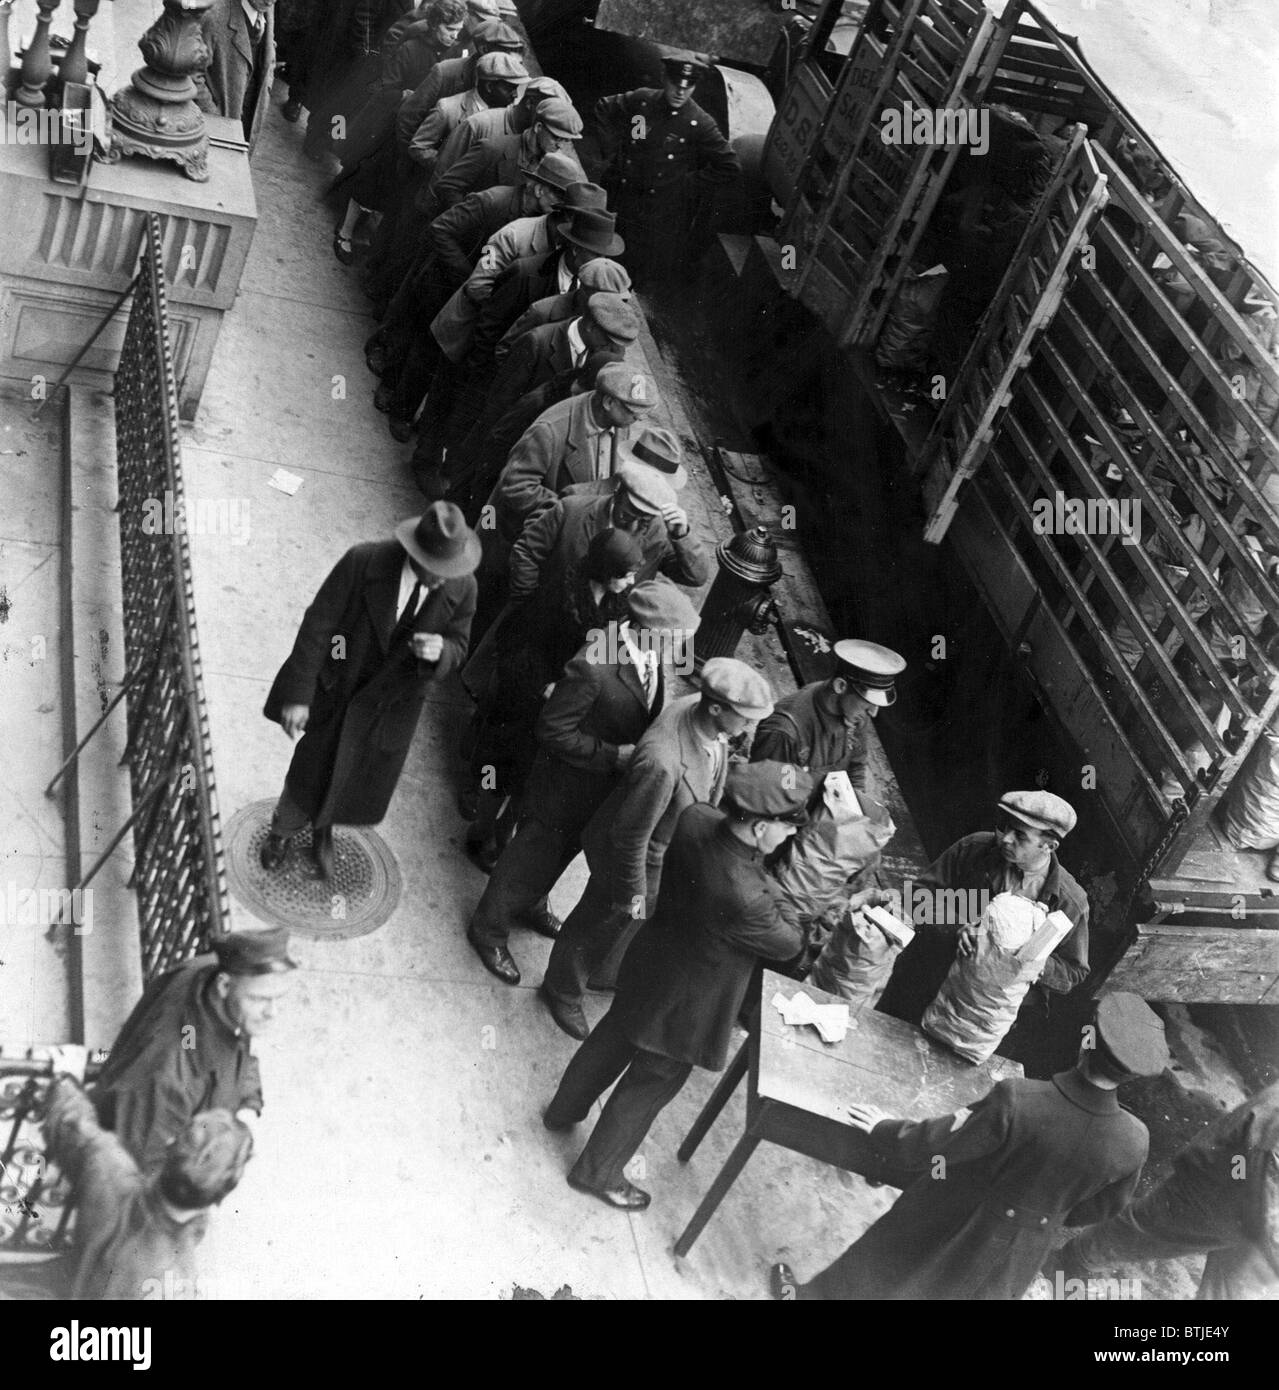 Food handouts in New York in 1930. Police stations were used as distribution centers. Photo shows food being distributed - Stock Image